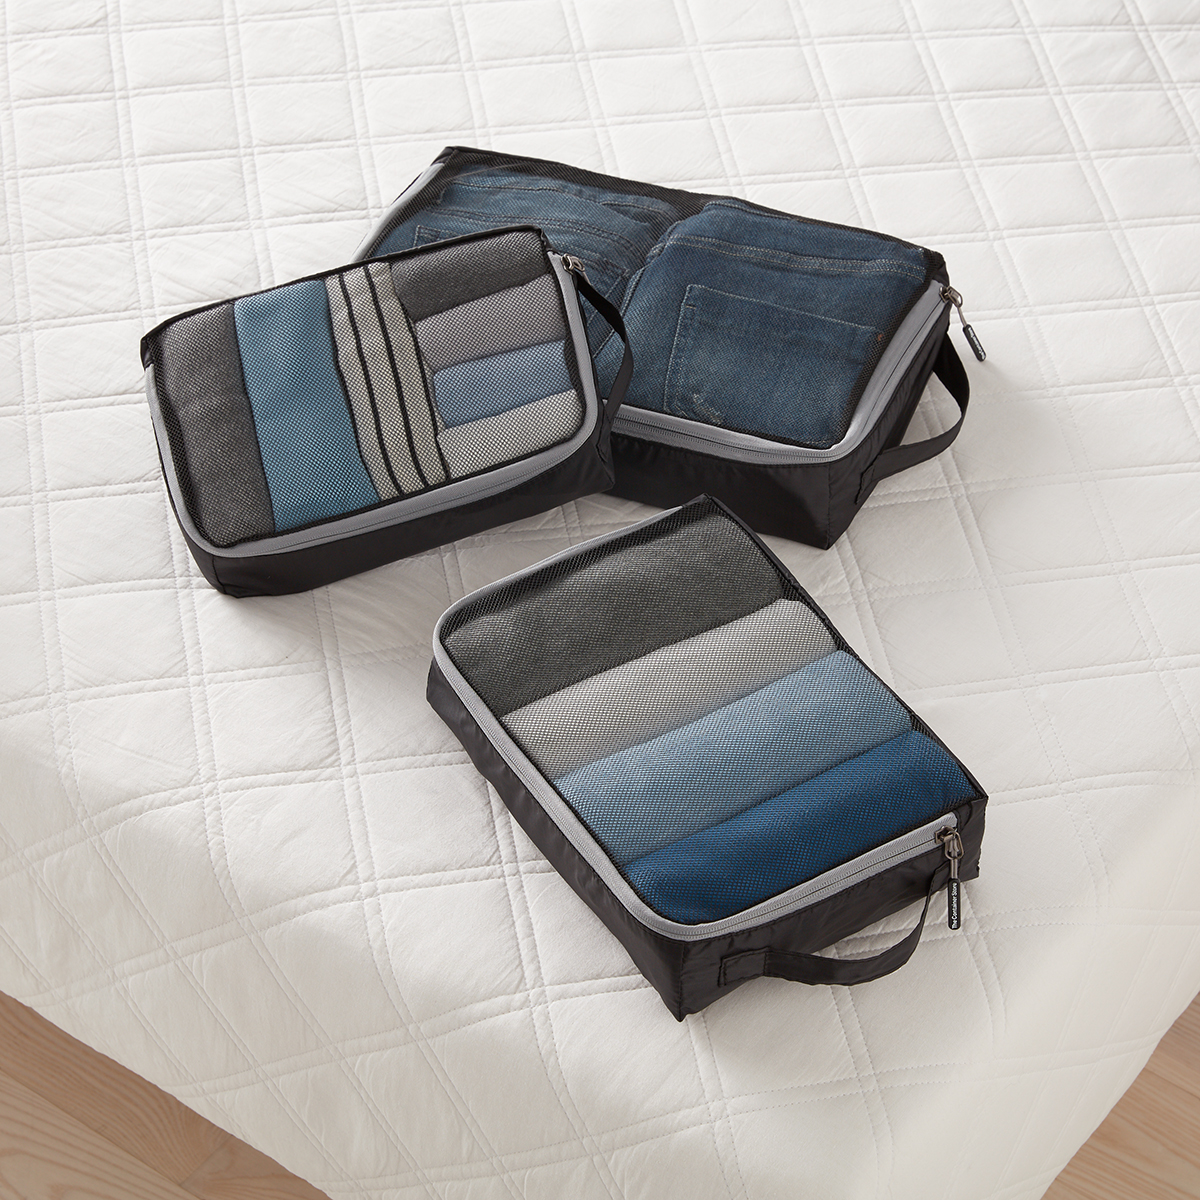 Black Packing Cubes Set of 3